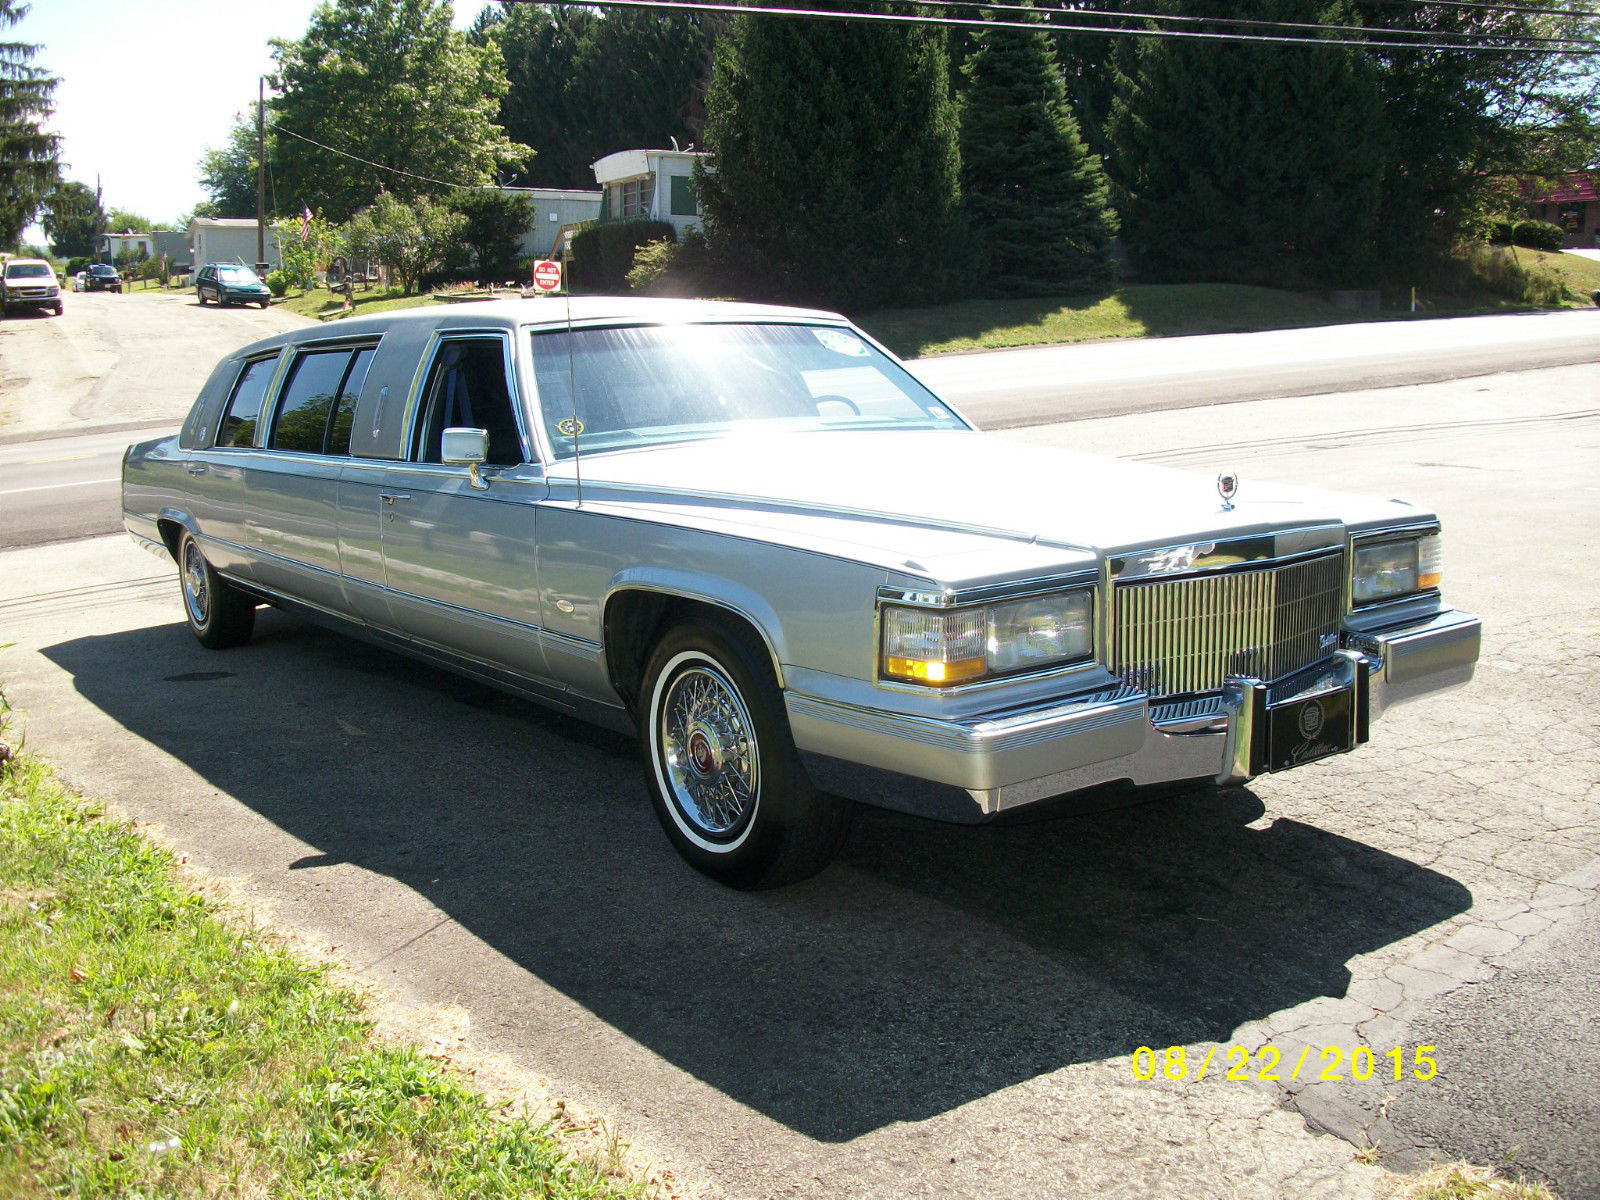 23′ Silver 1990 Cadillac Brougham Limo for sale